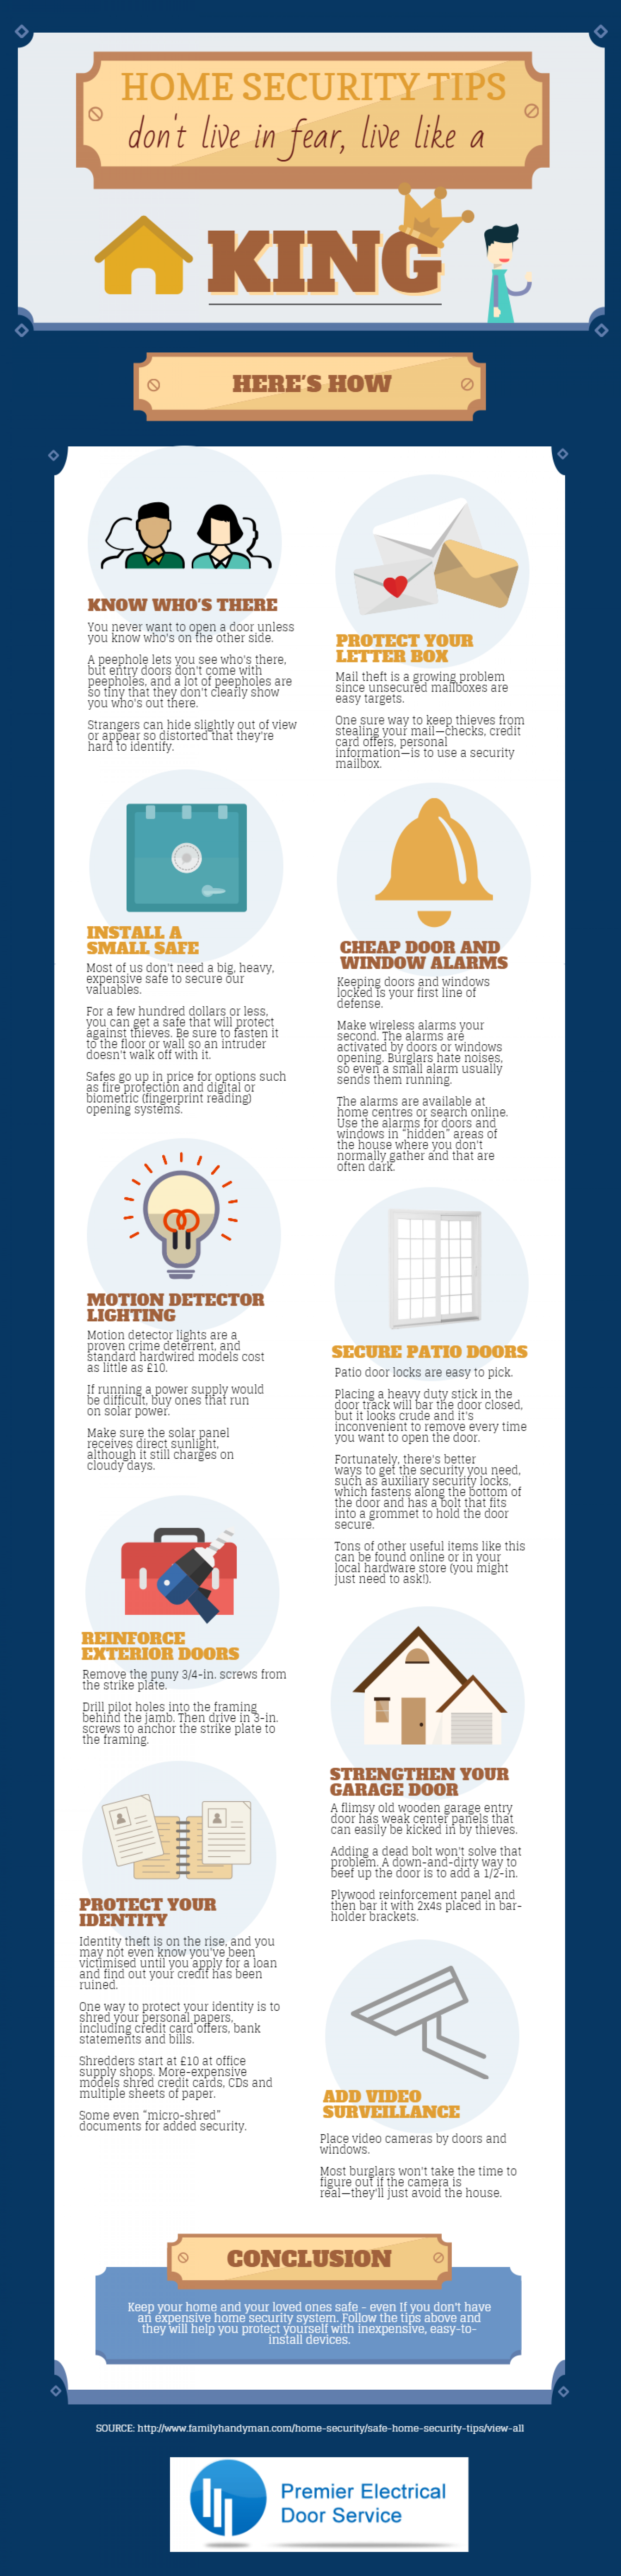 10 Inexpensive Home Security Tips To Help You Stay Safe Infographic